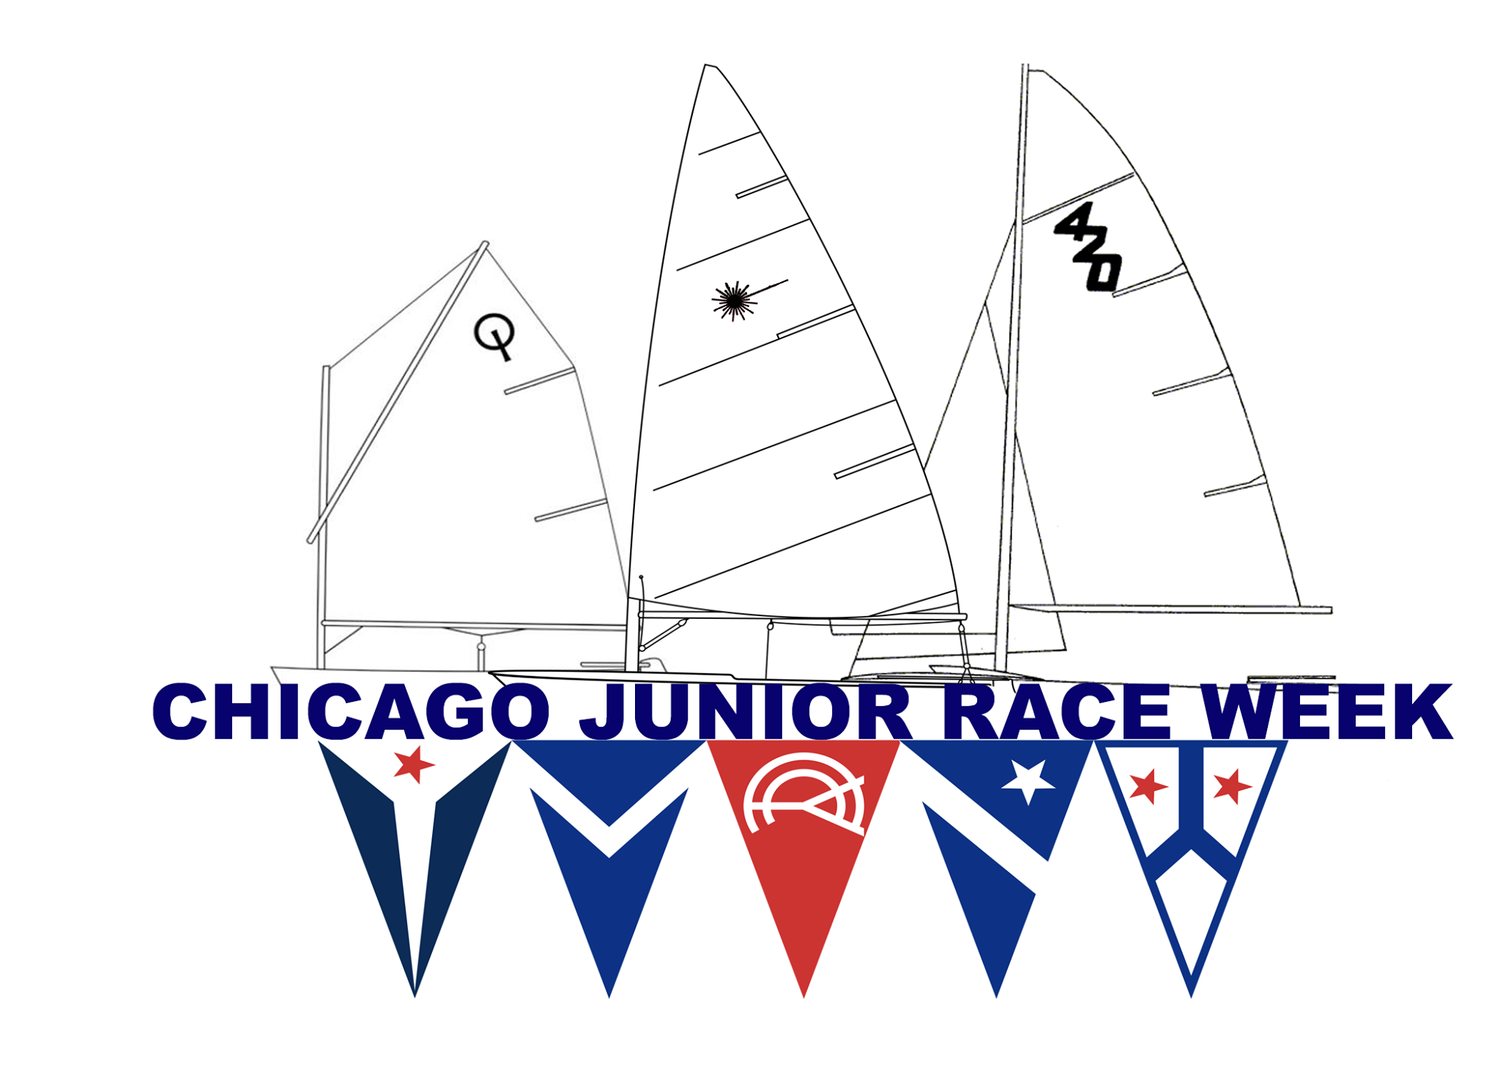 Chicago Junior Race Week